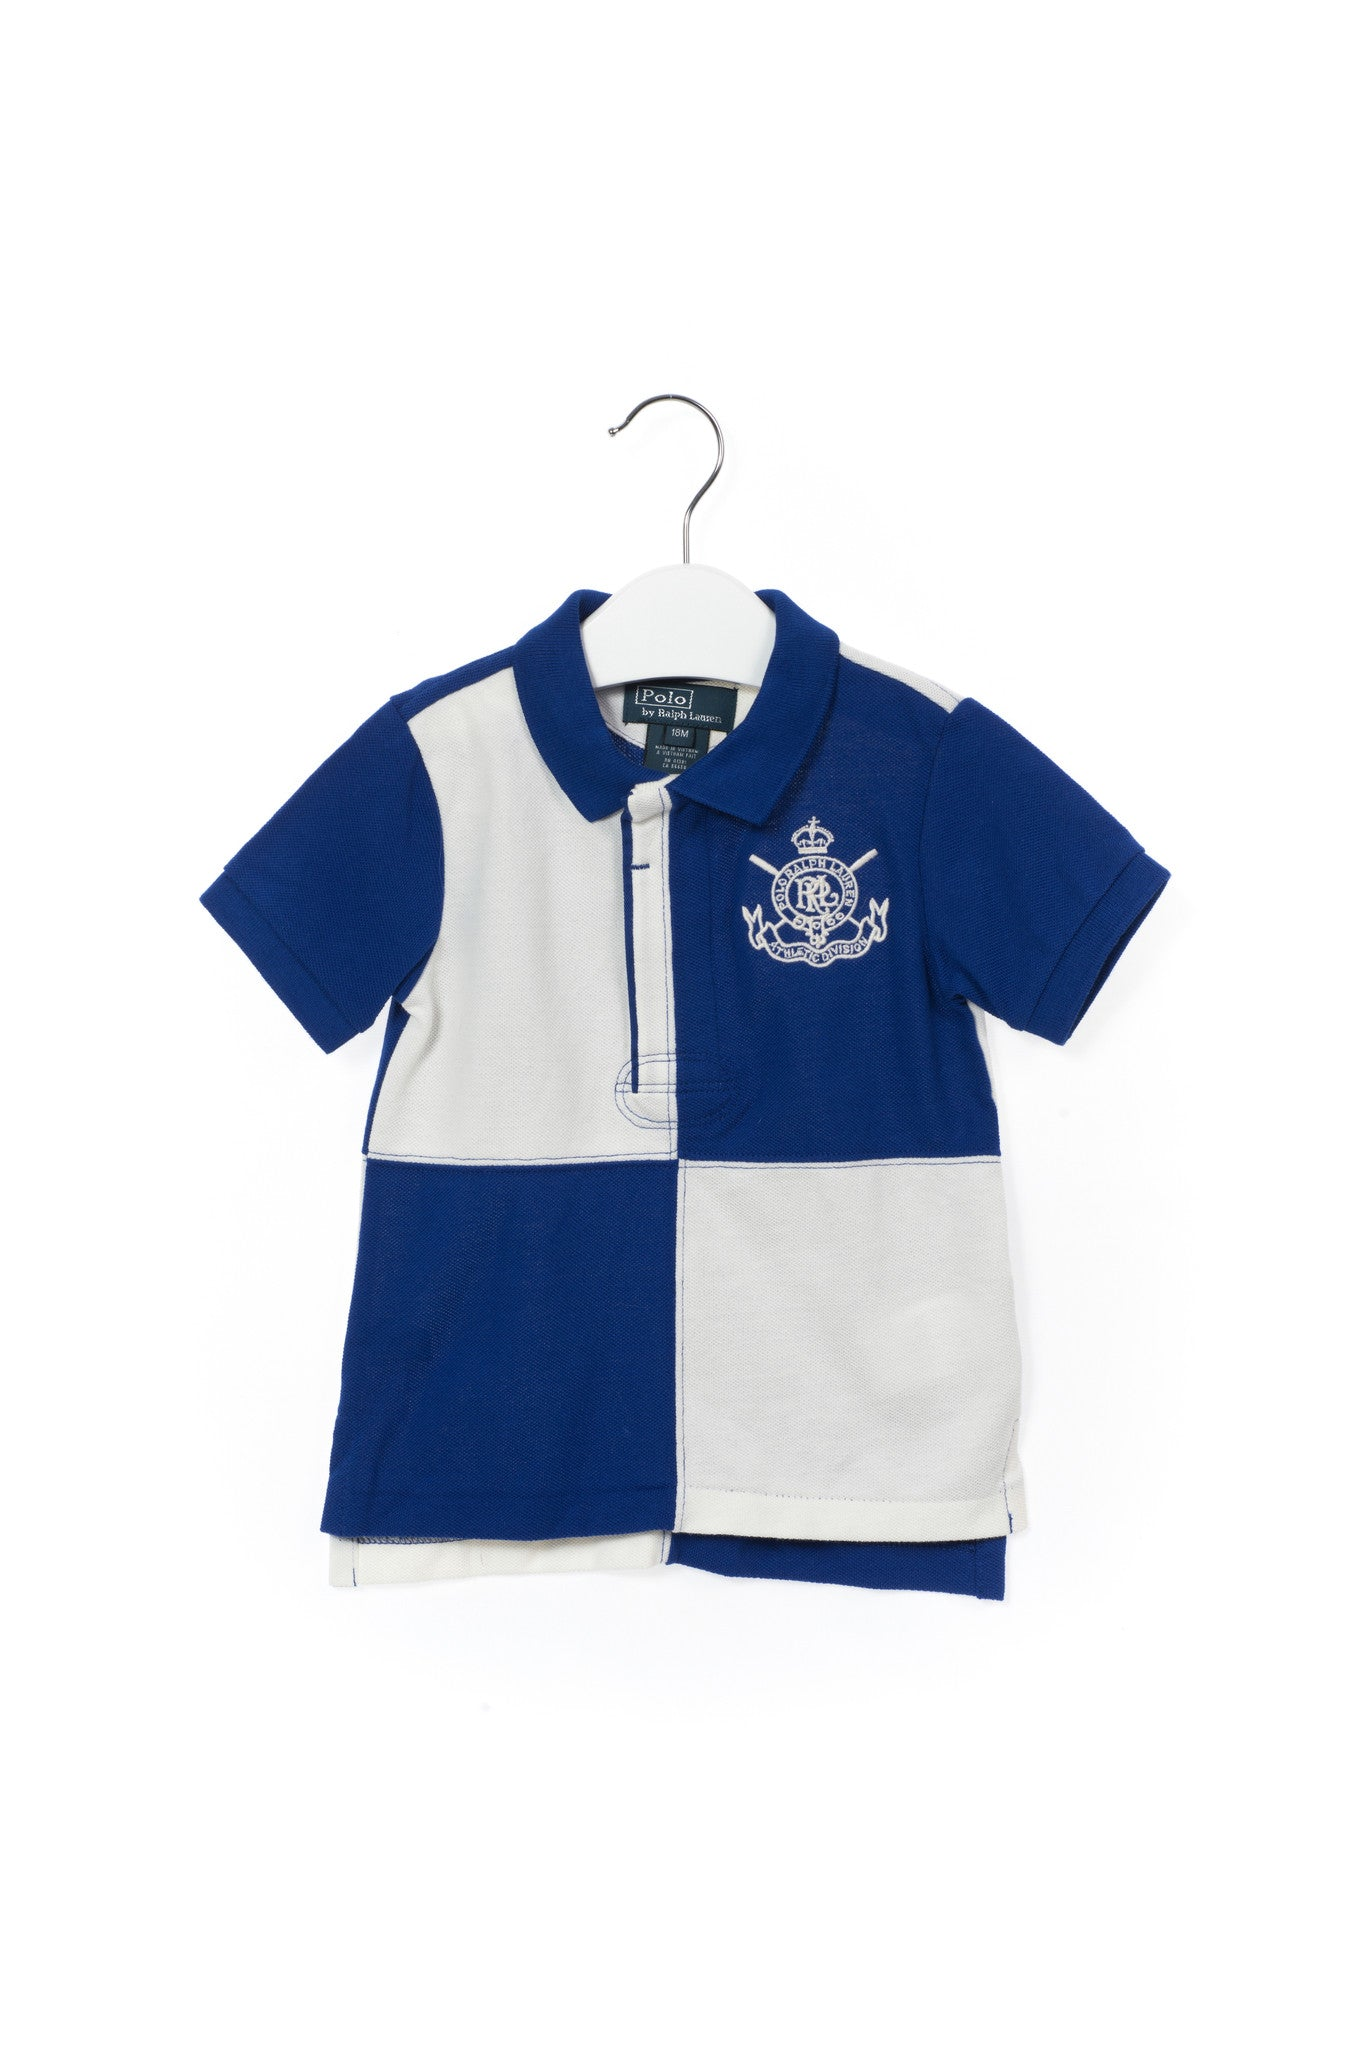 Polo Ralph Lauren at Retykle | Online Shopping Discount Baby & Kids Clothes Hong Kong